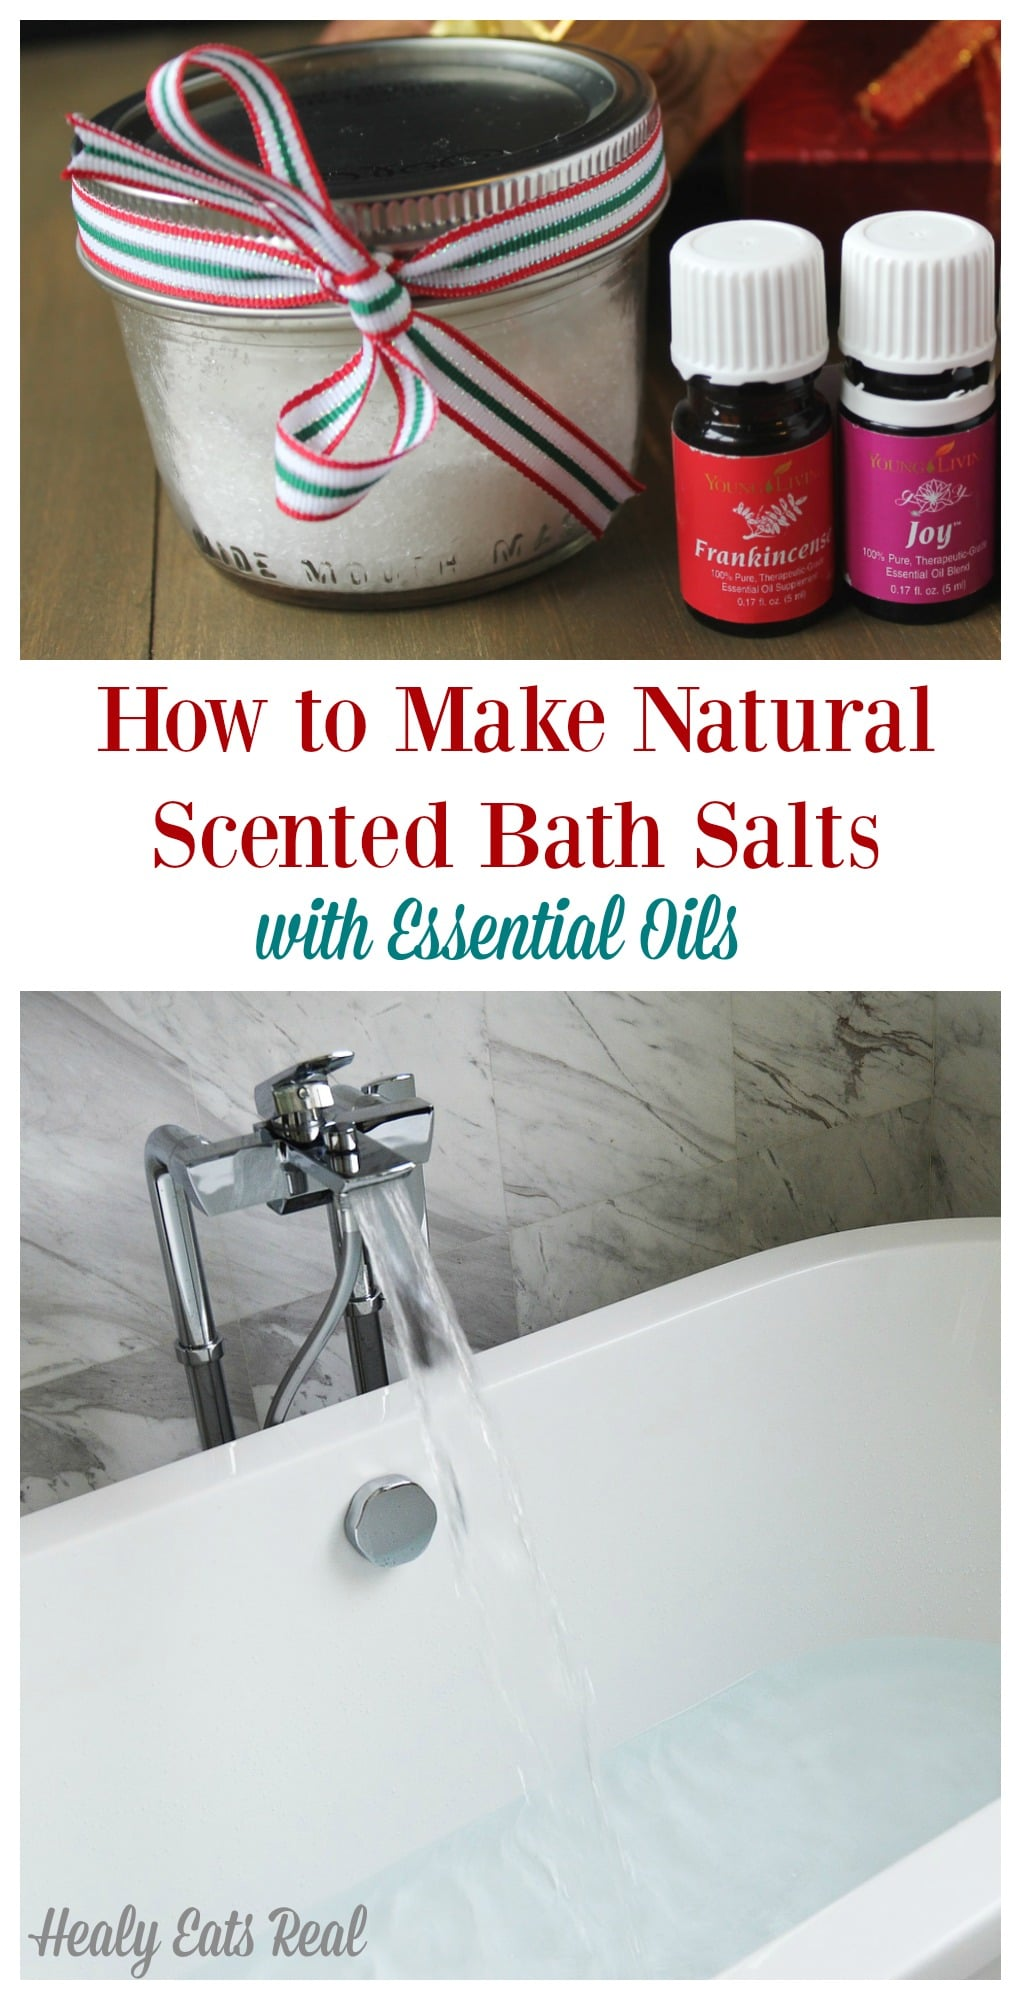 Natural Scented Bath Salts